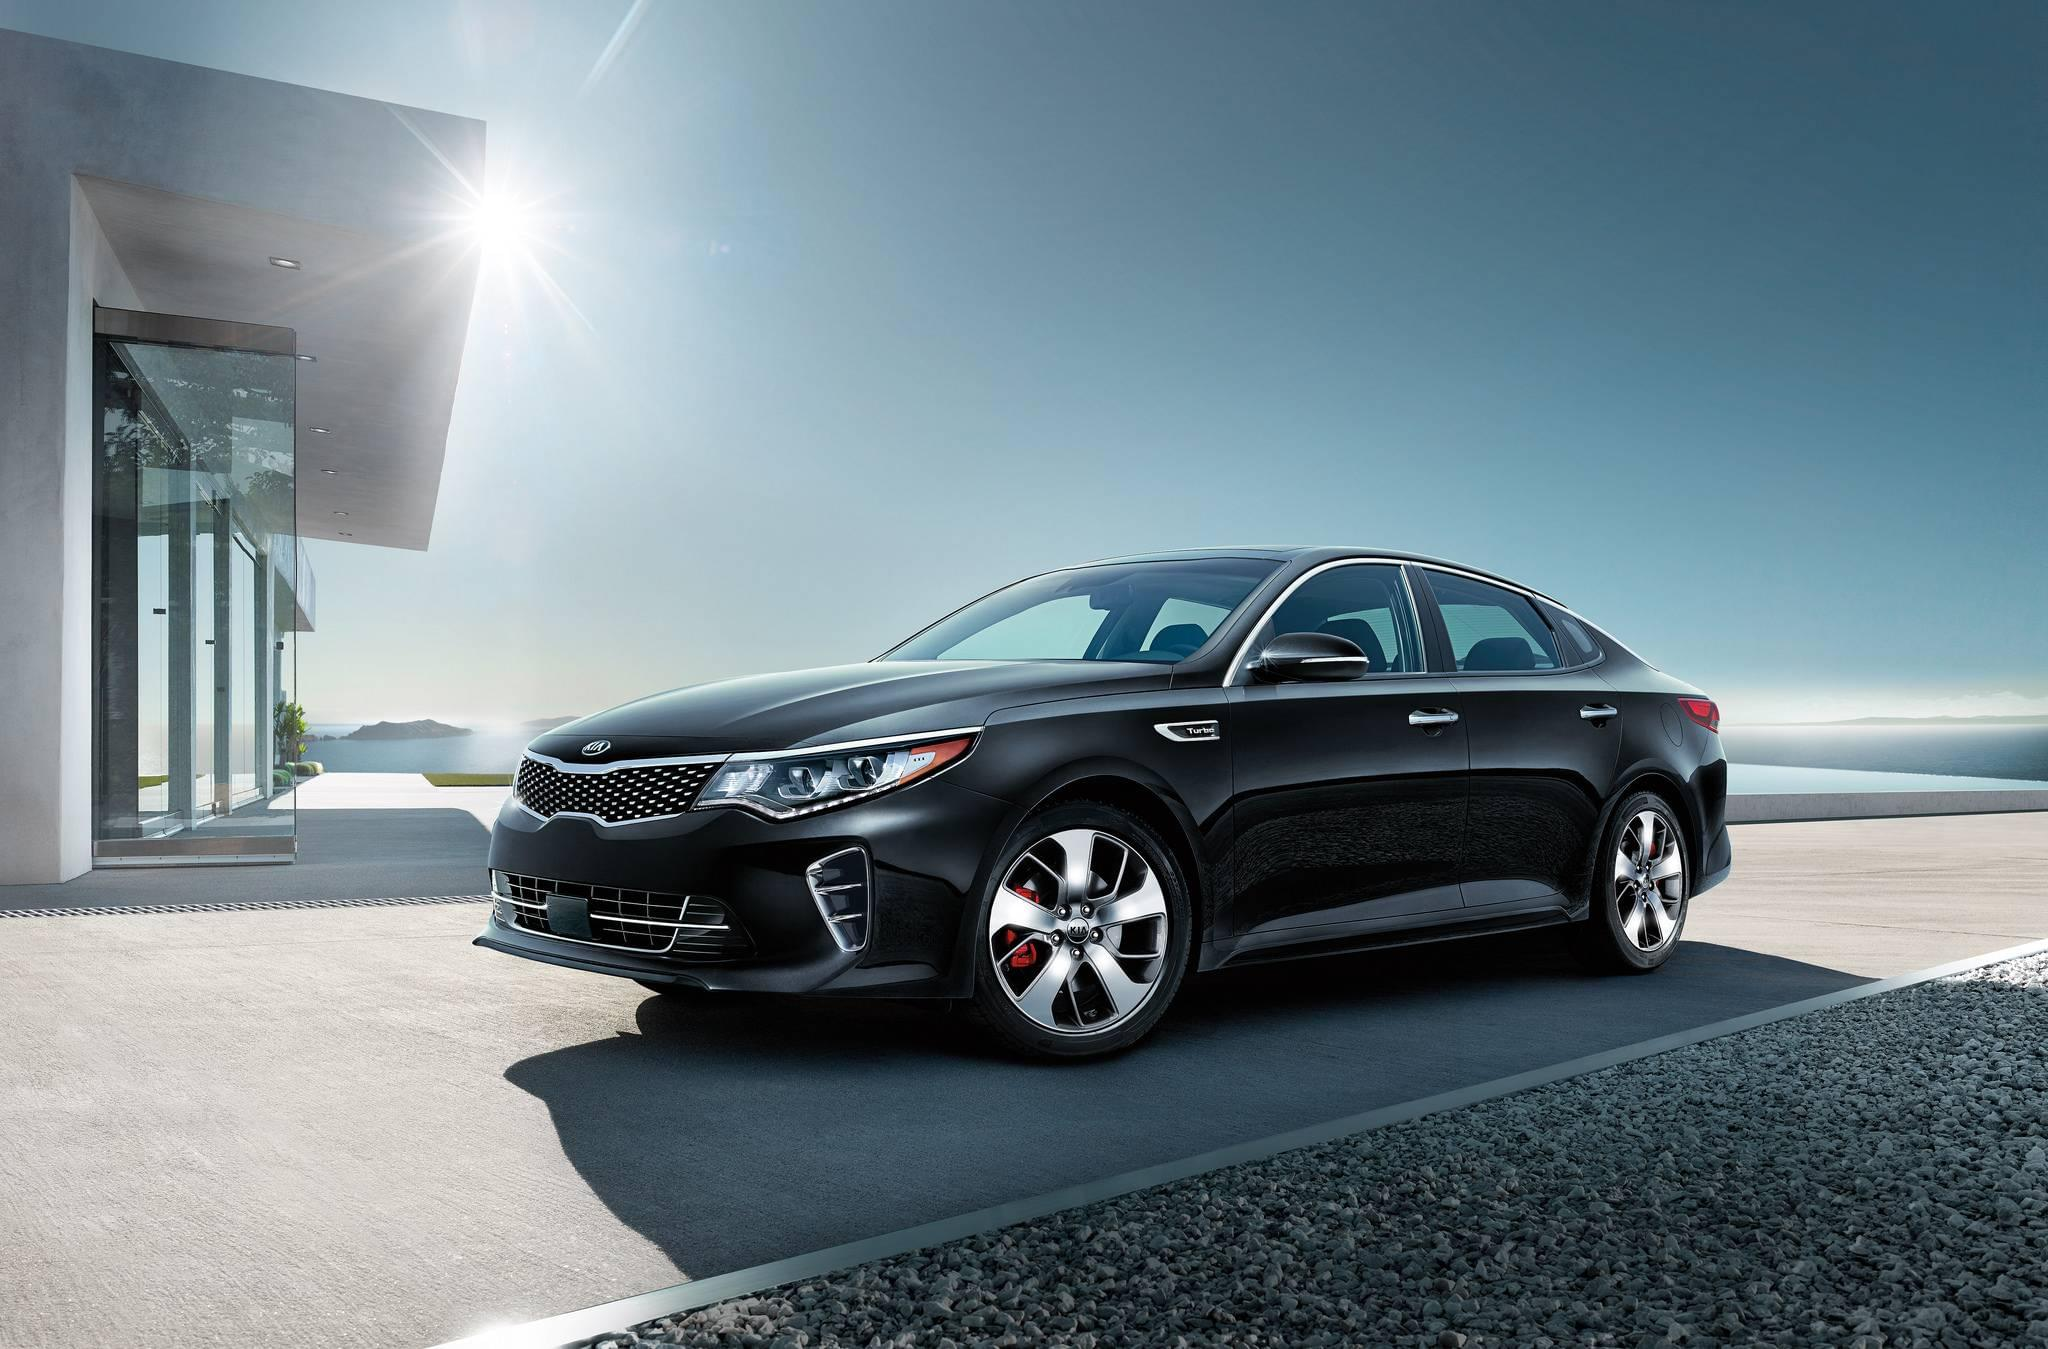 2017 Kia Optima - black - Carriage Kia